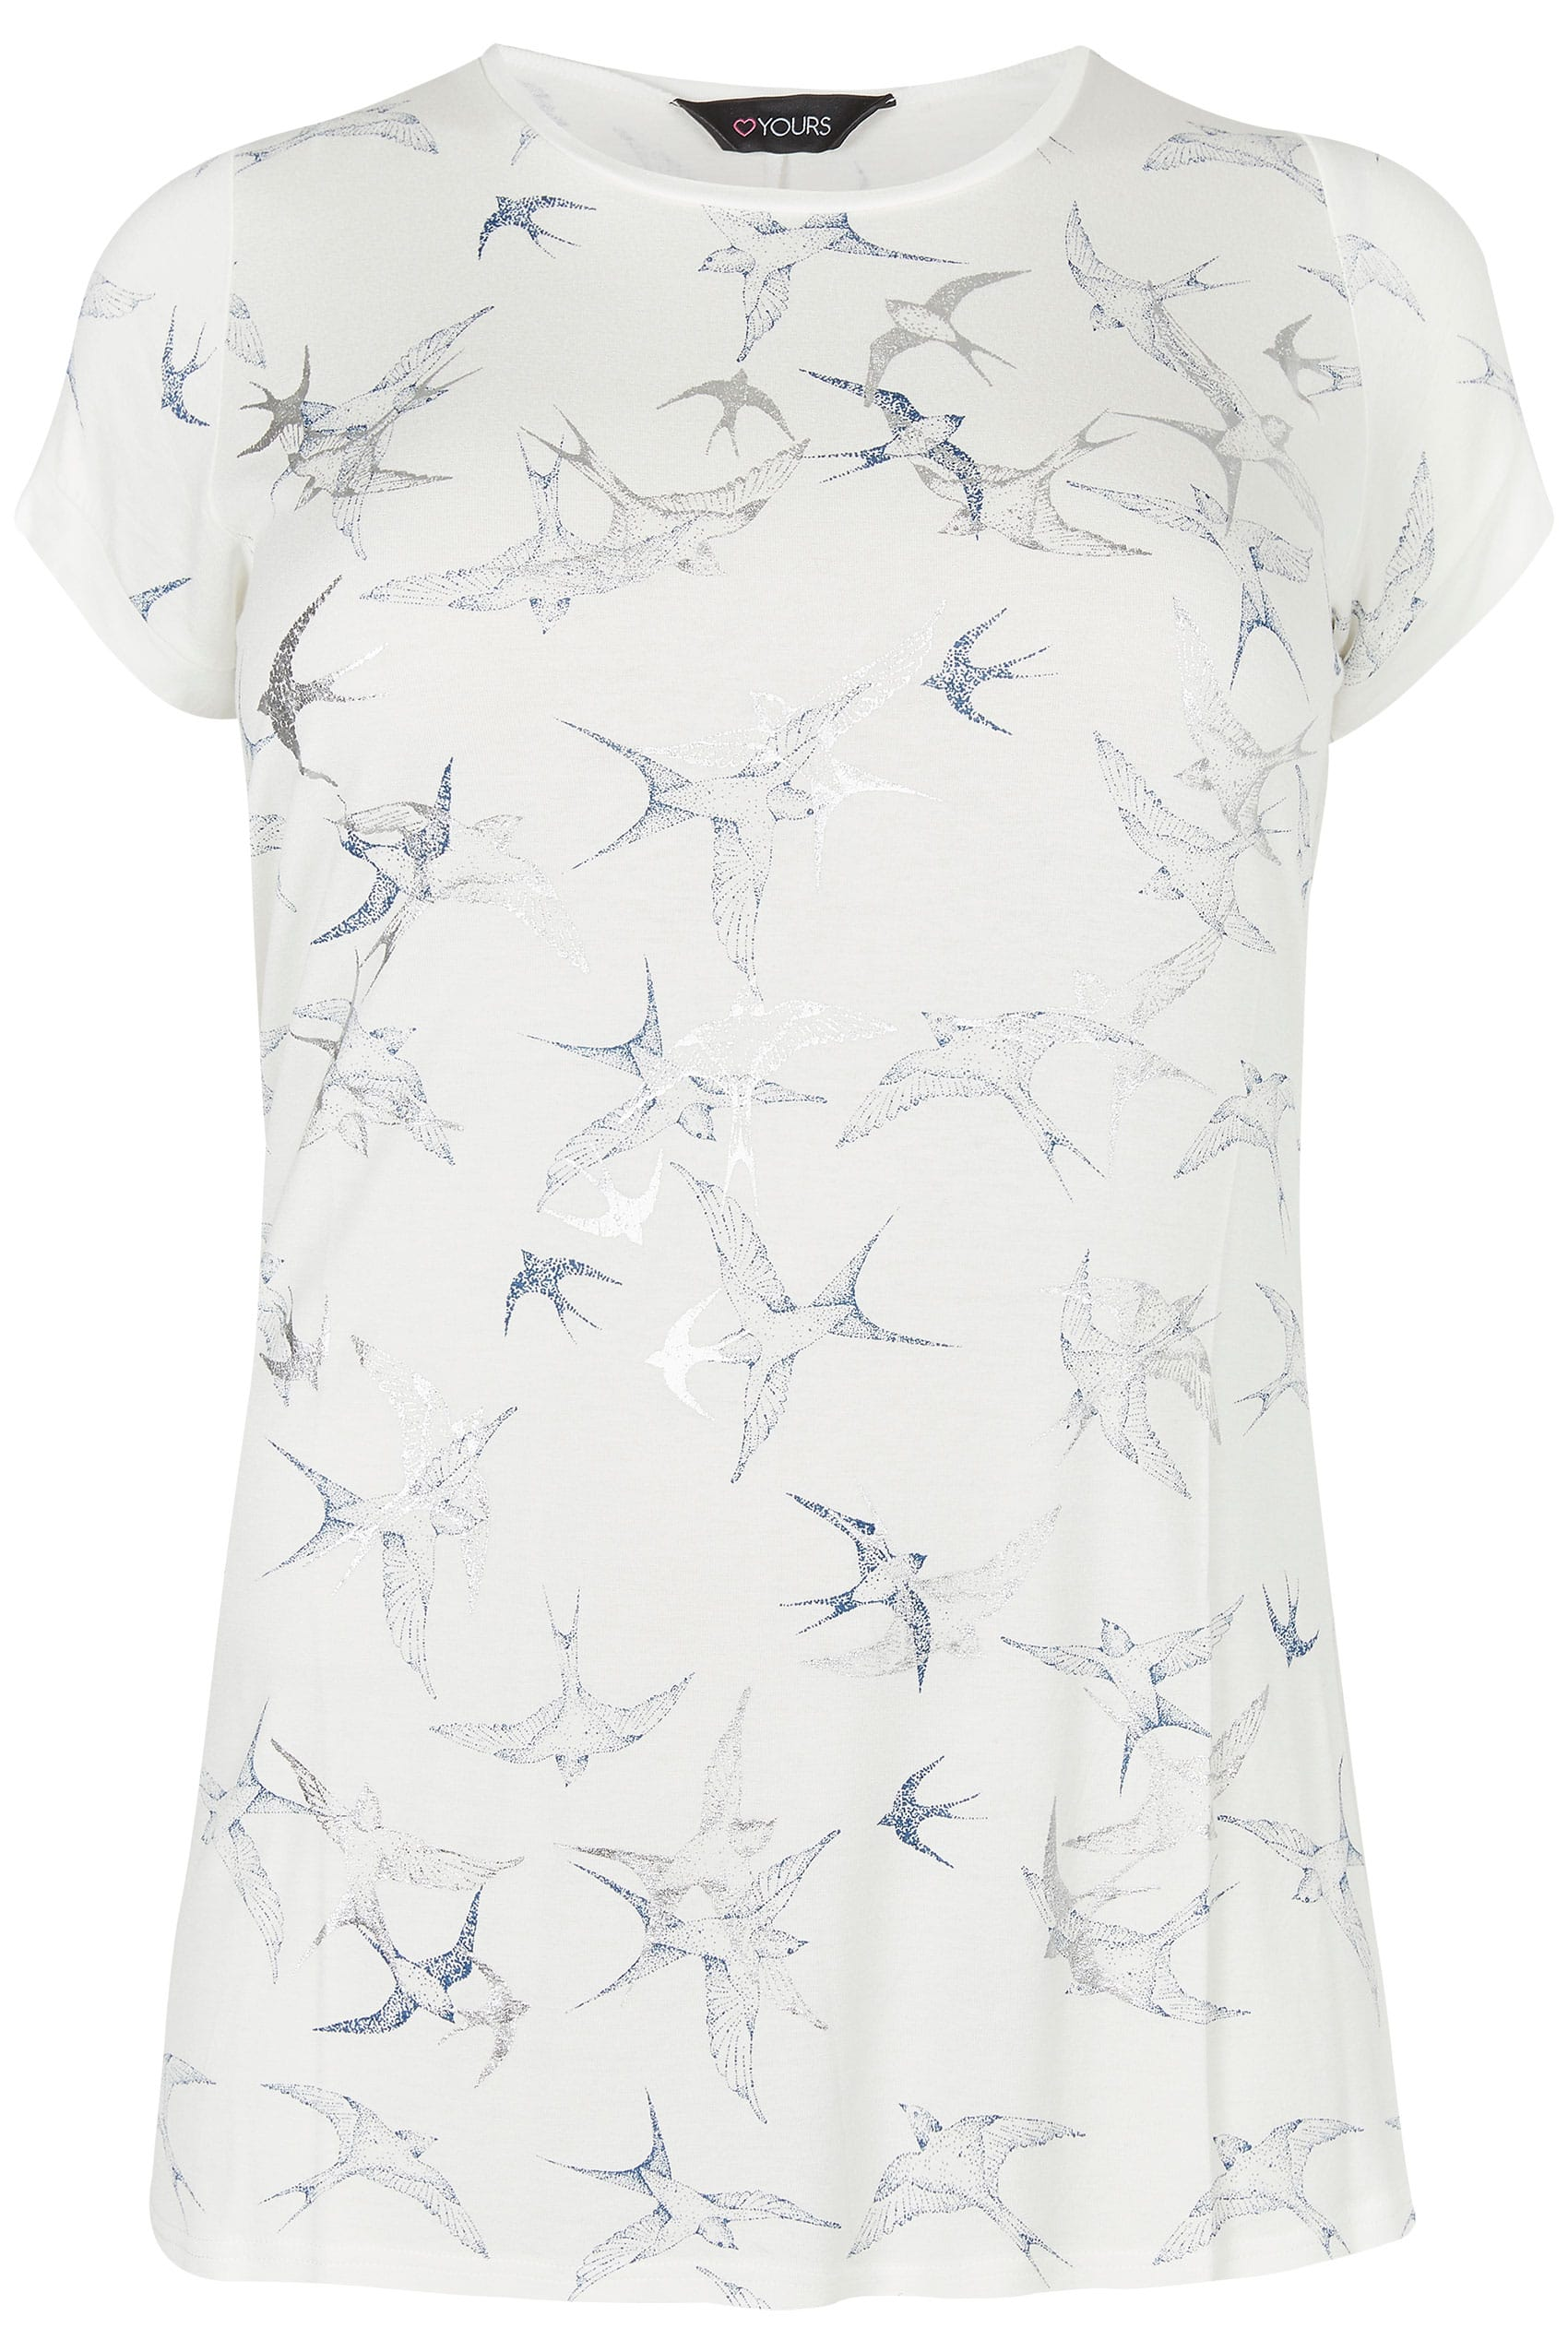 White blue foil swallow print t shirt plus size 16 to 36 for Quick print t shirts